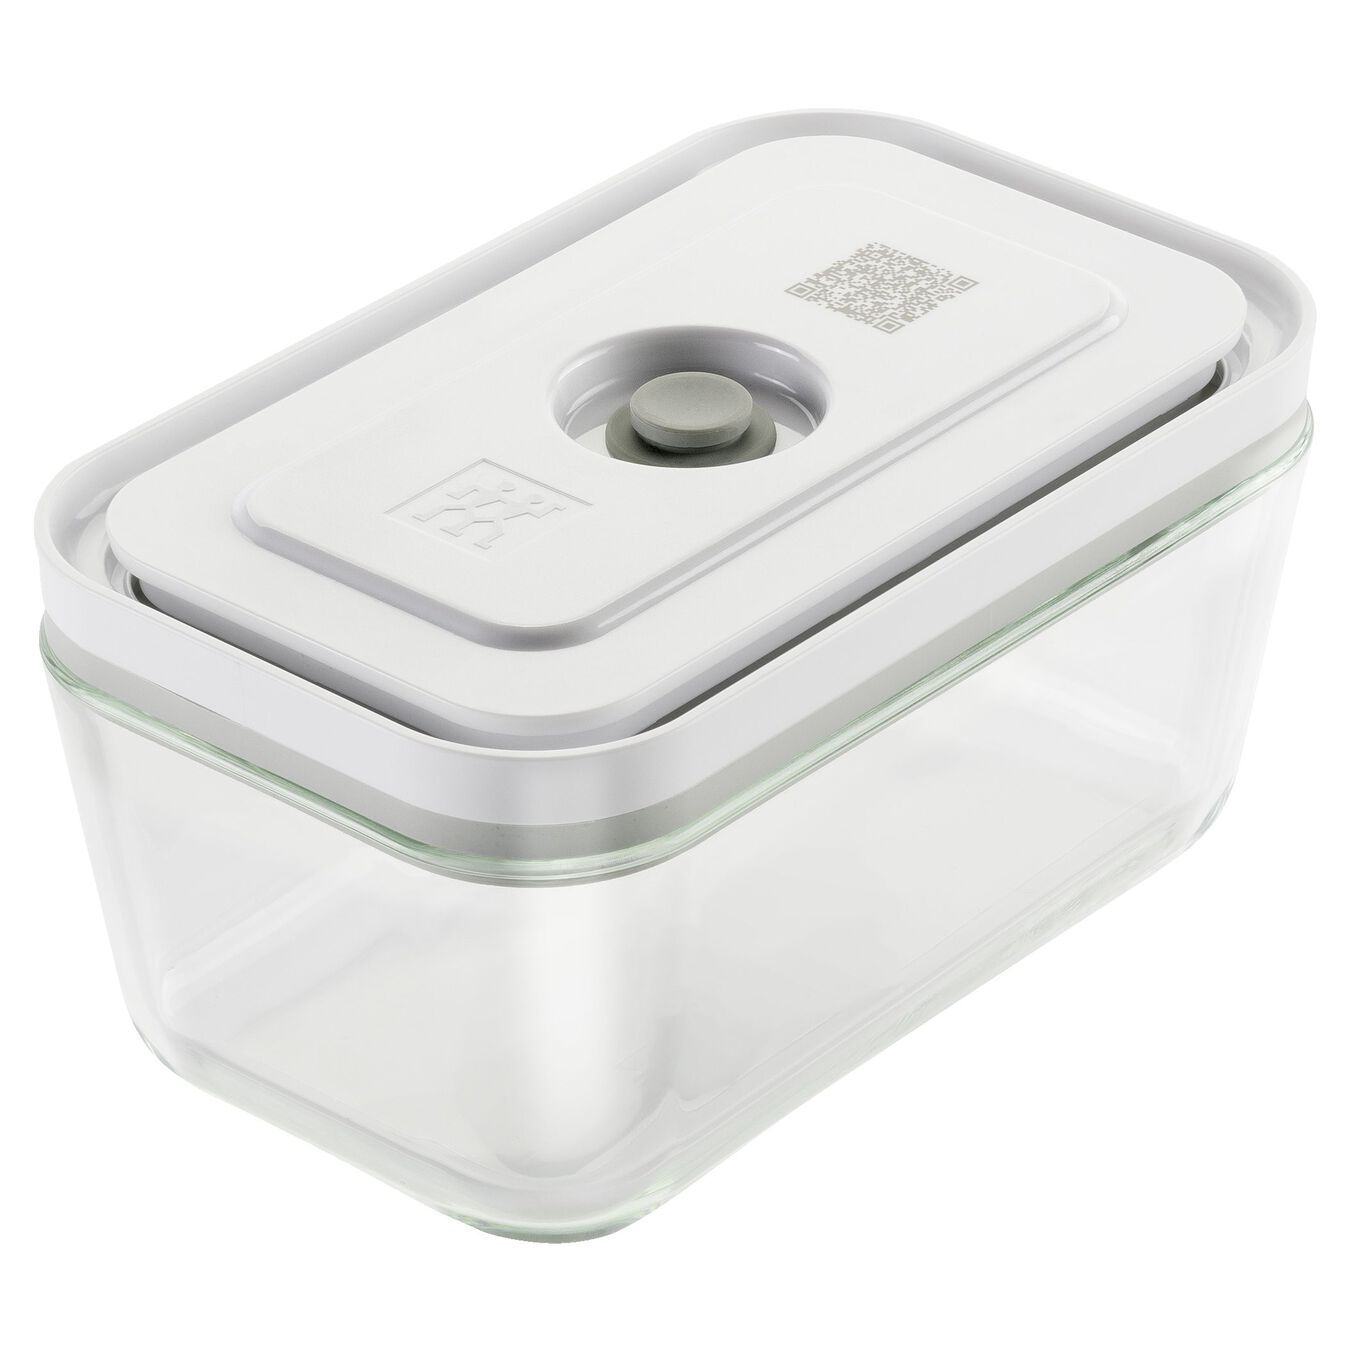 Vacuum box, White | Premium,,large 1